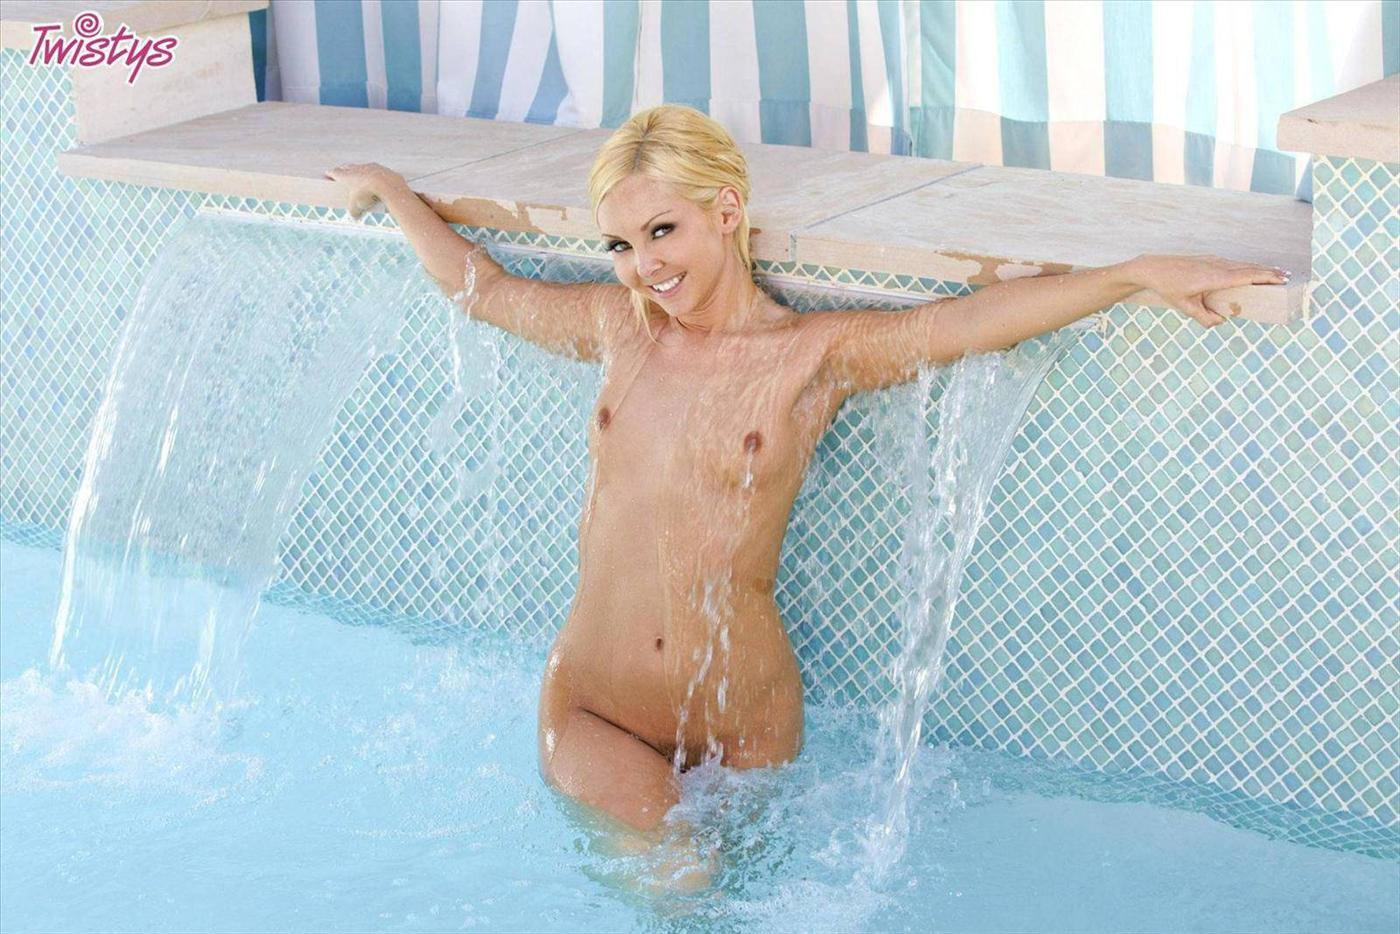 www.CelebTiger.com+Aaliyah+Love+Splish+Splash+By+The+Pool+2013aaliyahlovets042112 p02 125DVH366 Blonde Model Aaliyah Love Splish Splash By The Pool And To Get Nude When Alone HQ Photos